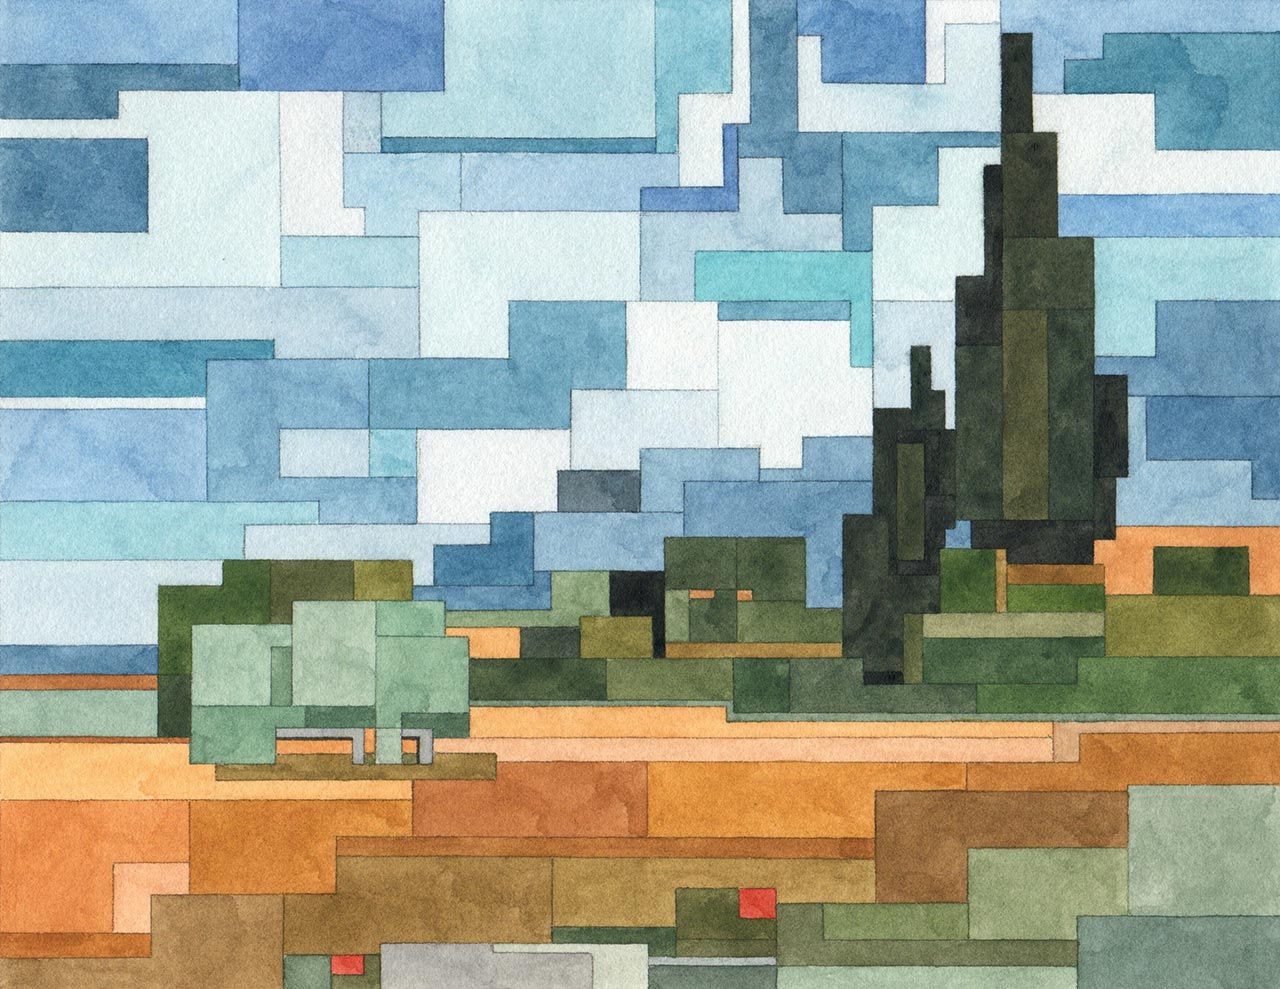 Adam Lister, Wheat Field with Cypresses. Geometrical watercolour inspired by Van Gogh © the artist.